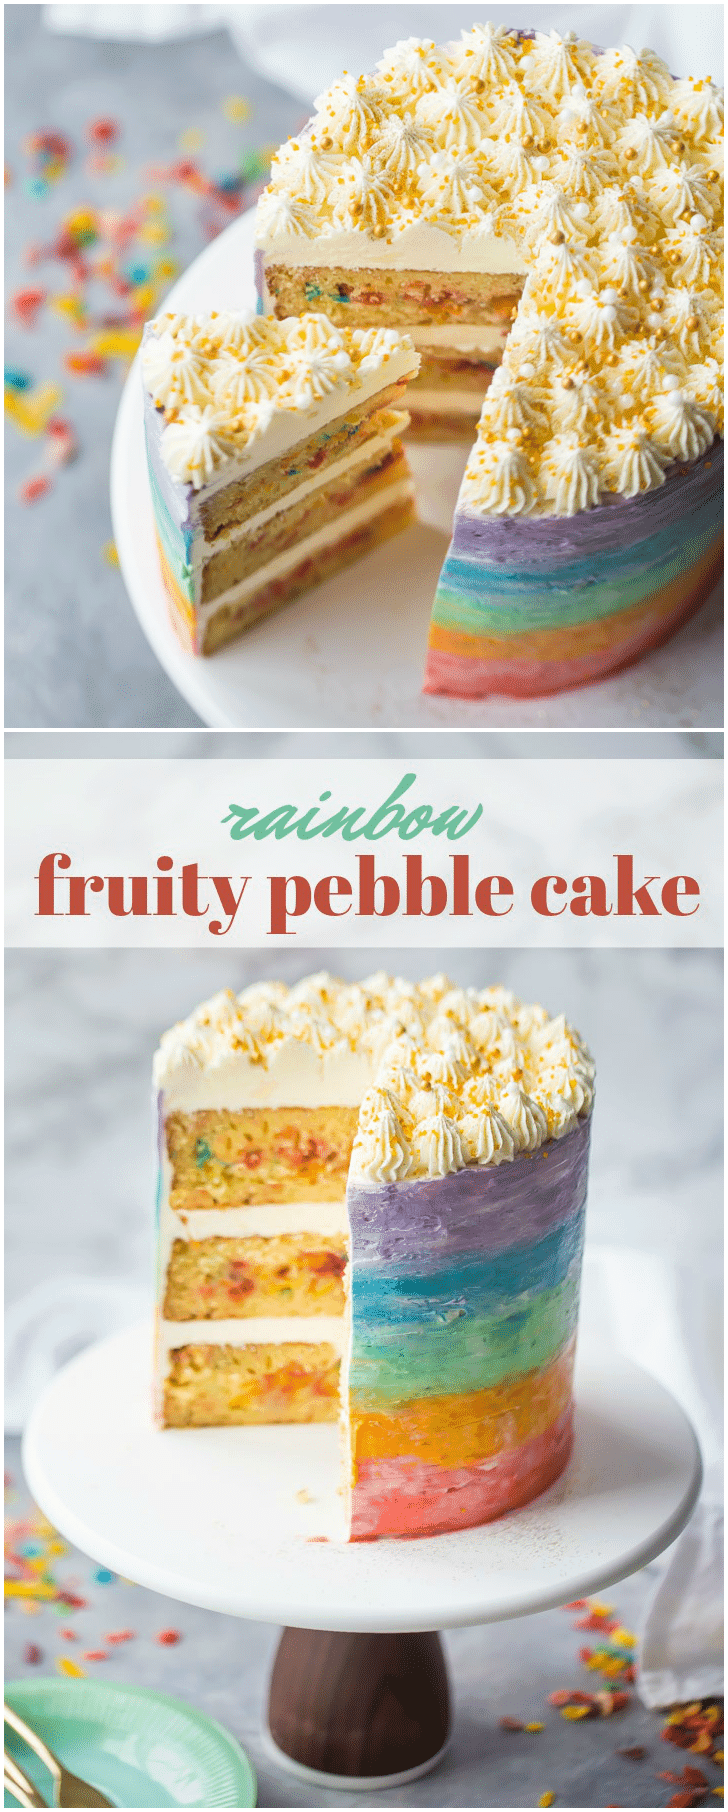 Rainbow fruity pebble cake!  With fruity pebbles cereal running all throughout, rainbow frosted sides and gold sprinkles on top!  It's like funfetti but BETTER!!  Perfect for St. Patrick's Day.  #rainbow #fruitypebbles #cereal #funfetti #cake #frosting #buttercream #stpatricksday #treats #baking #desserts #recipes